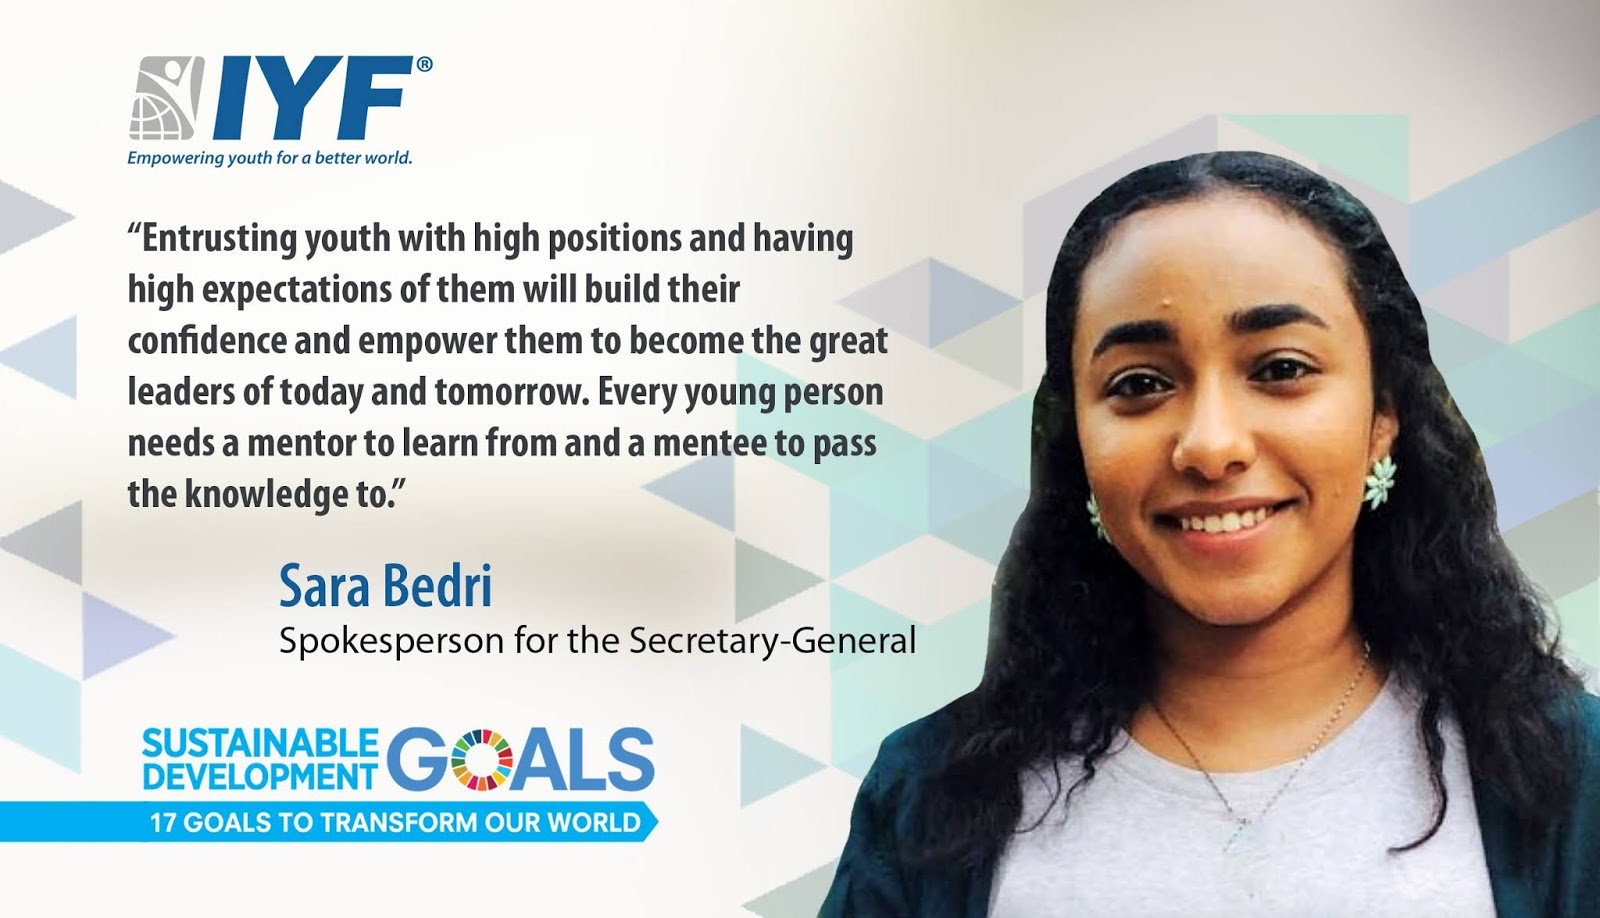 Sara Bedri, IYF Spokesperson for the Secretary-General.